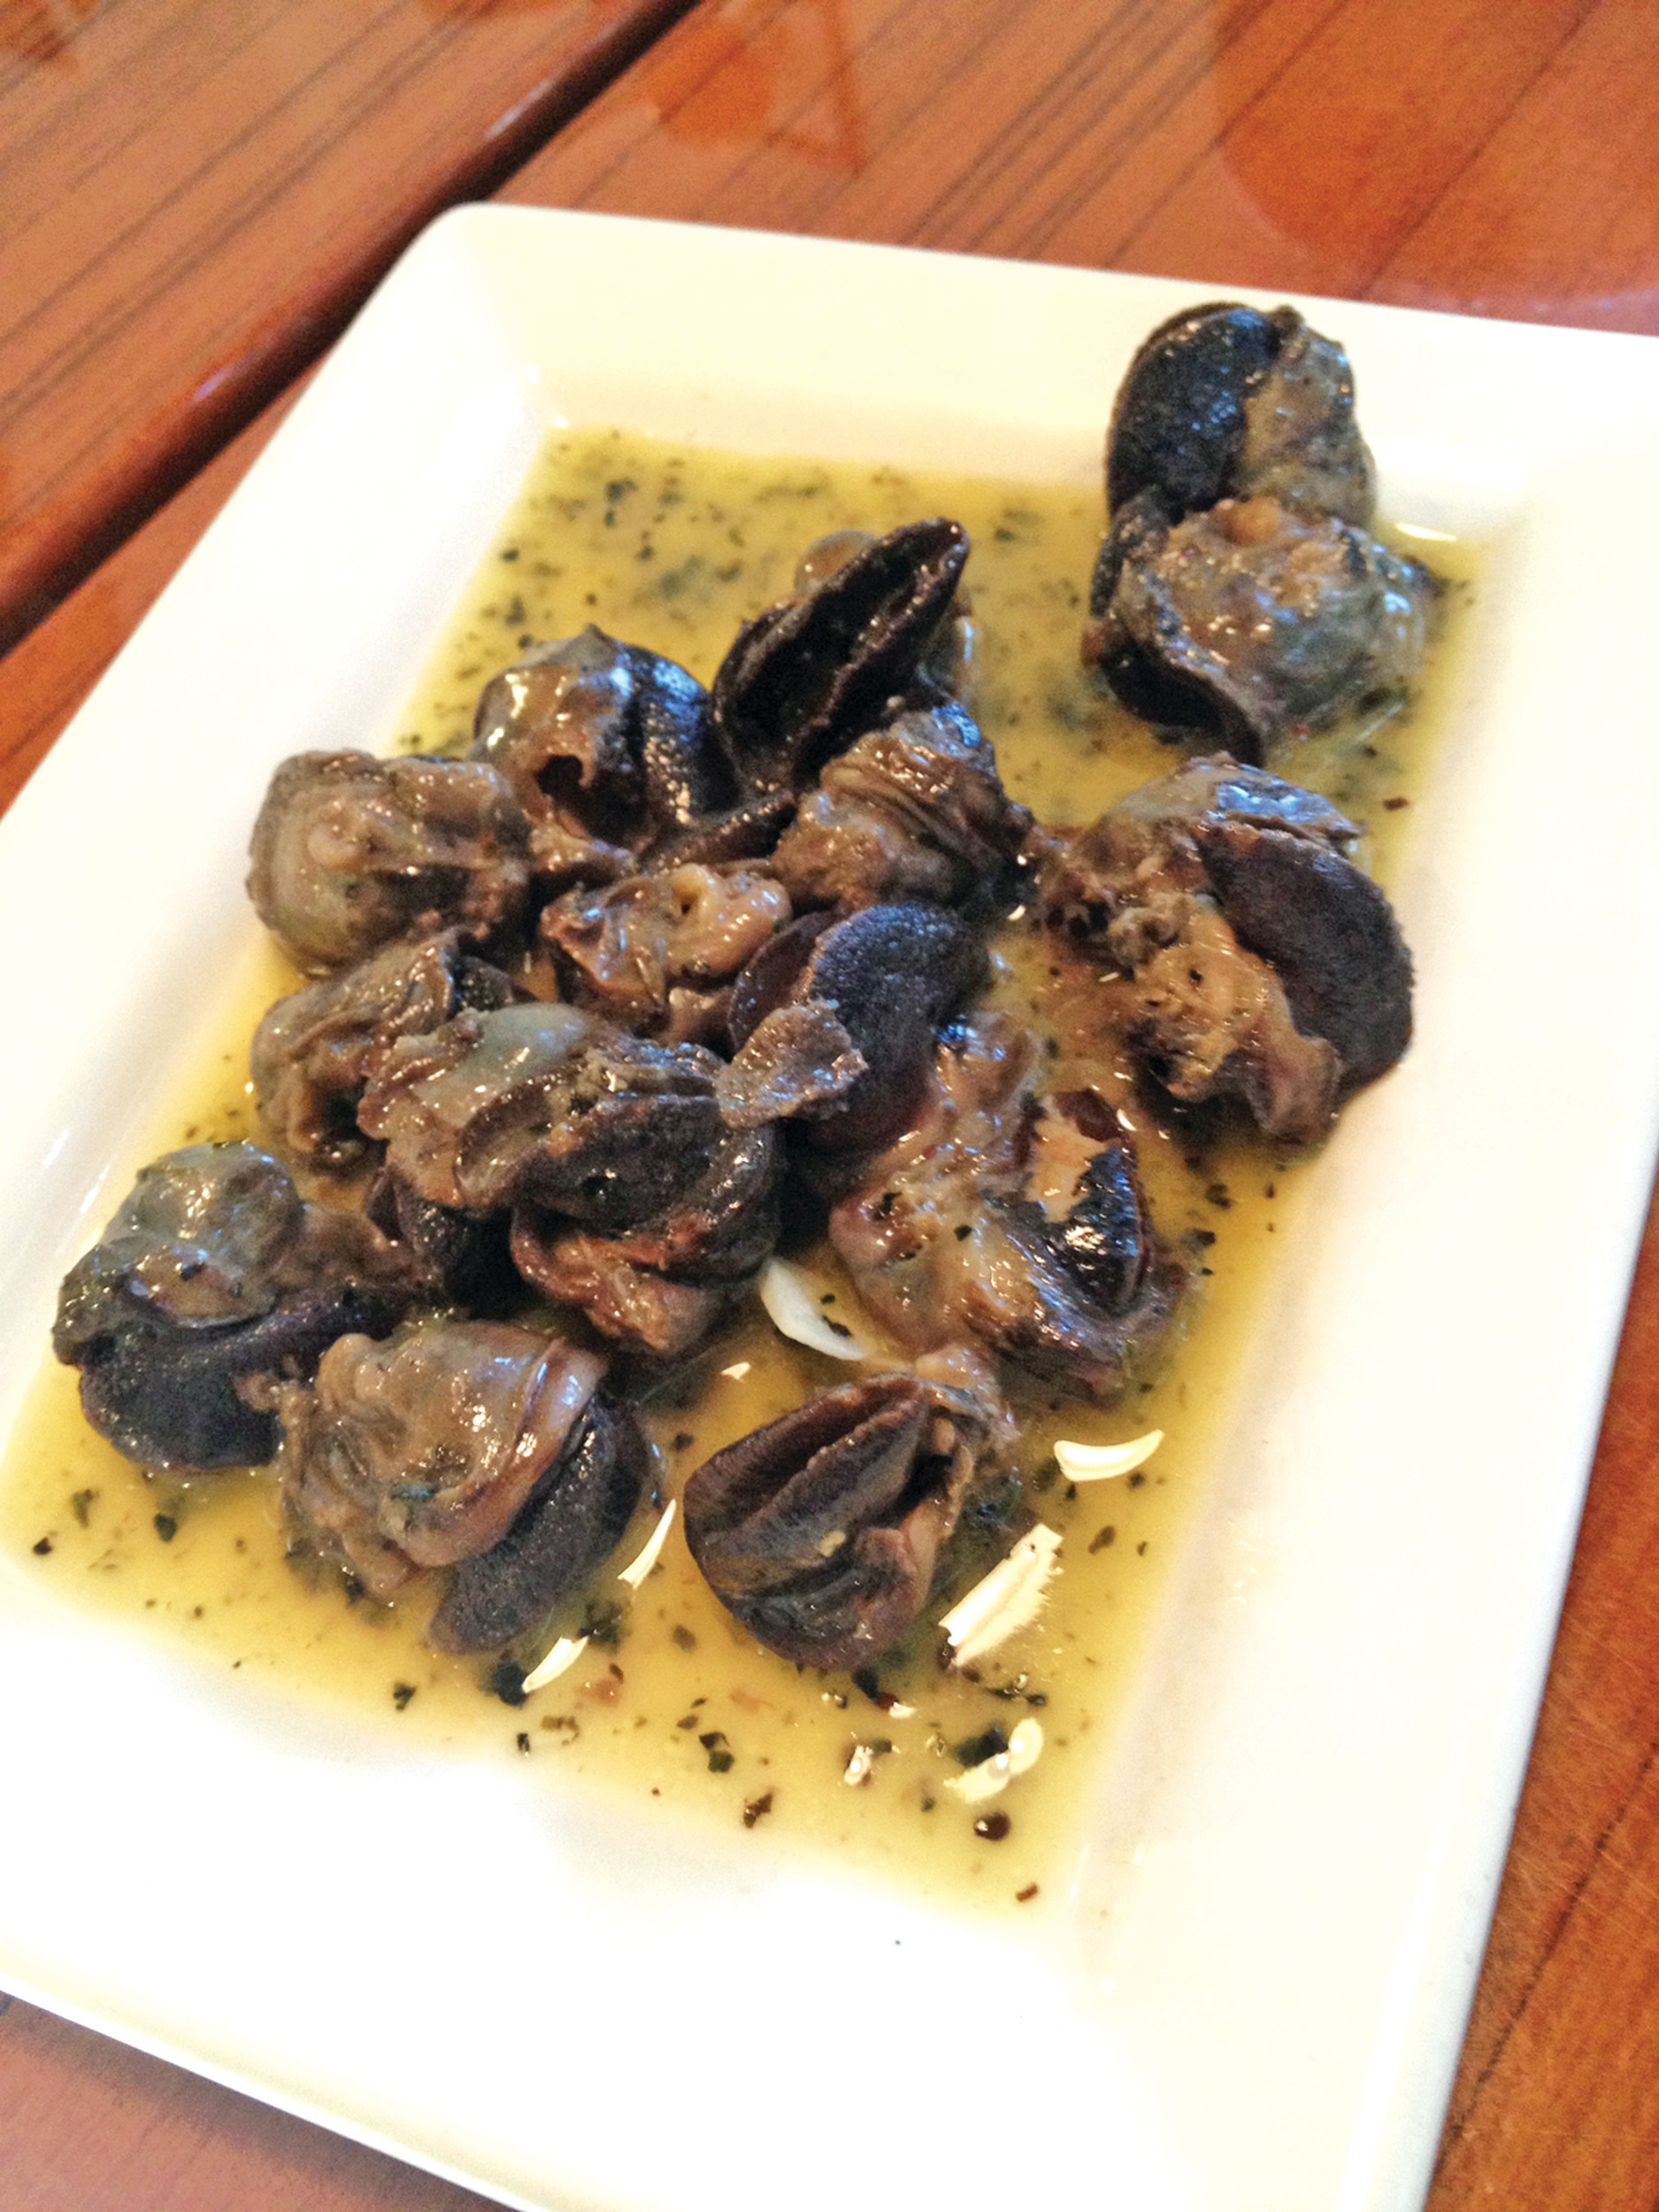 The escargot (snails) are served with a sweet basil and garlicky butter sauce.